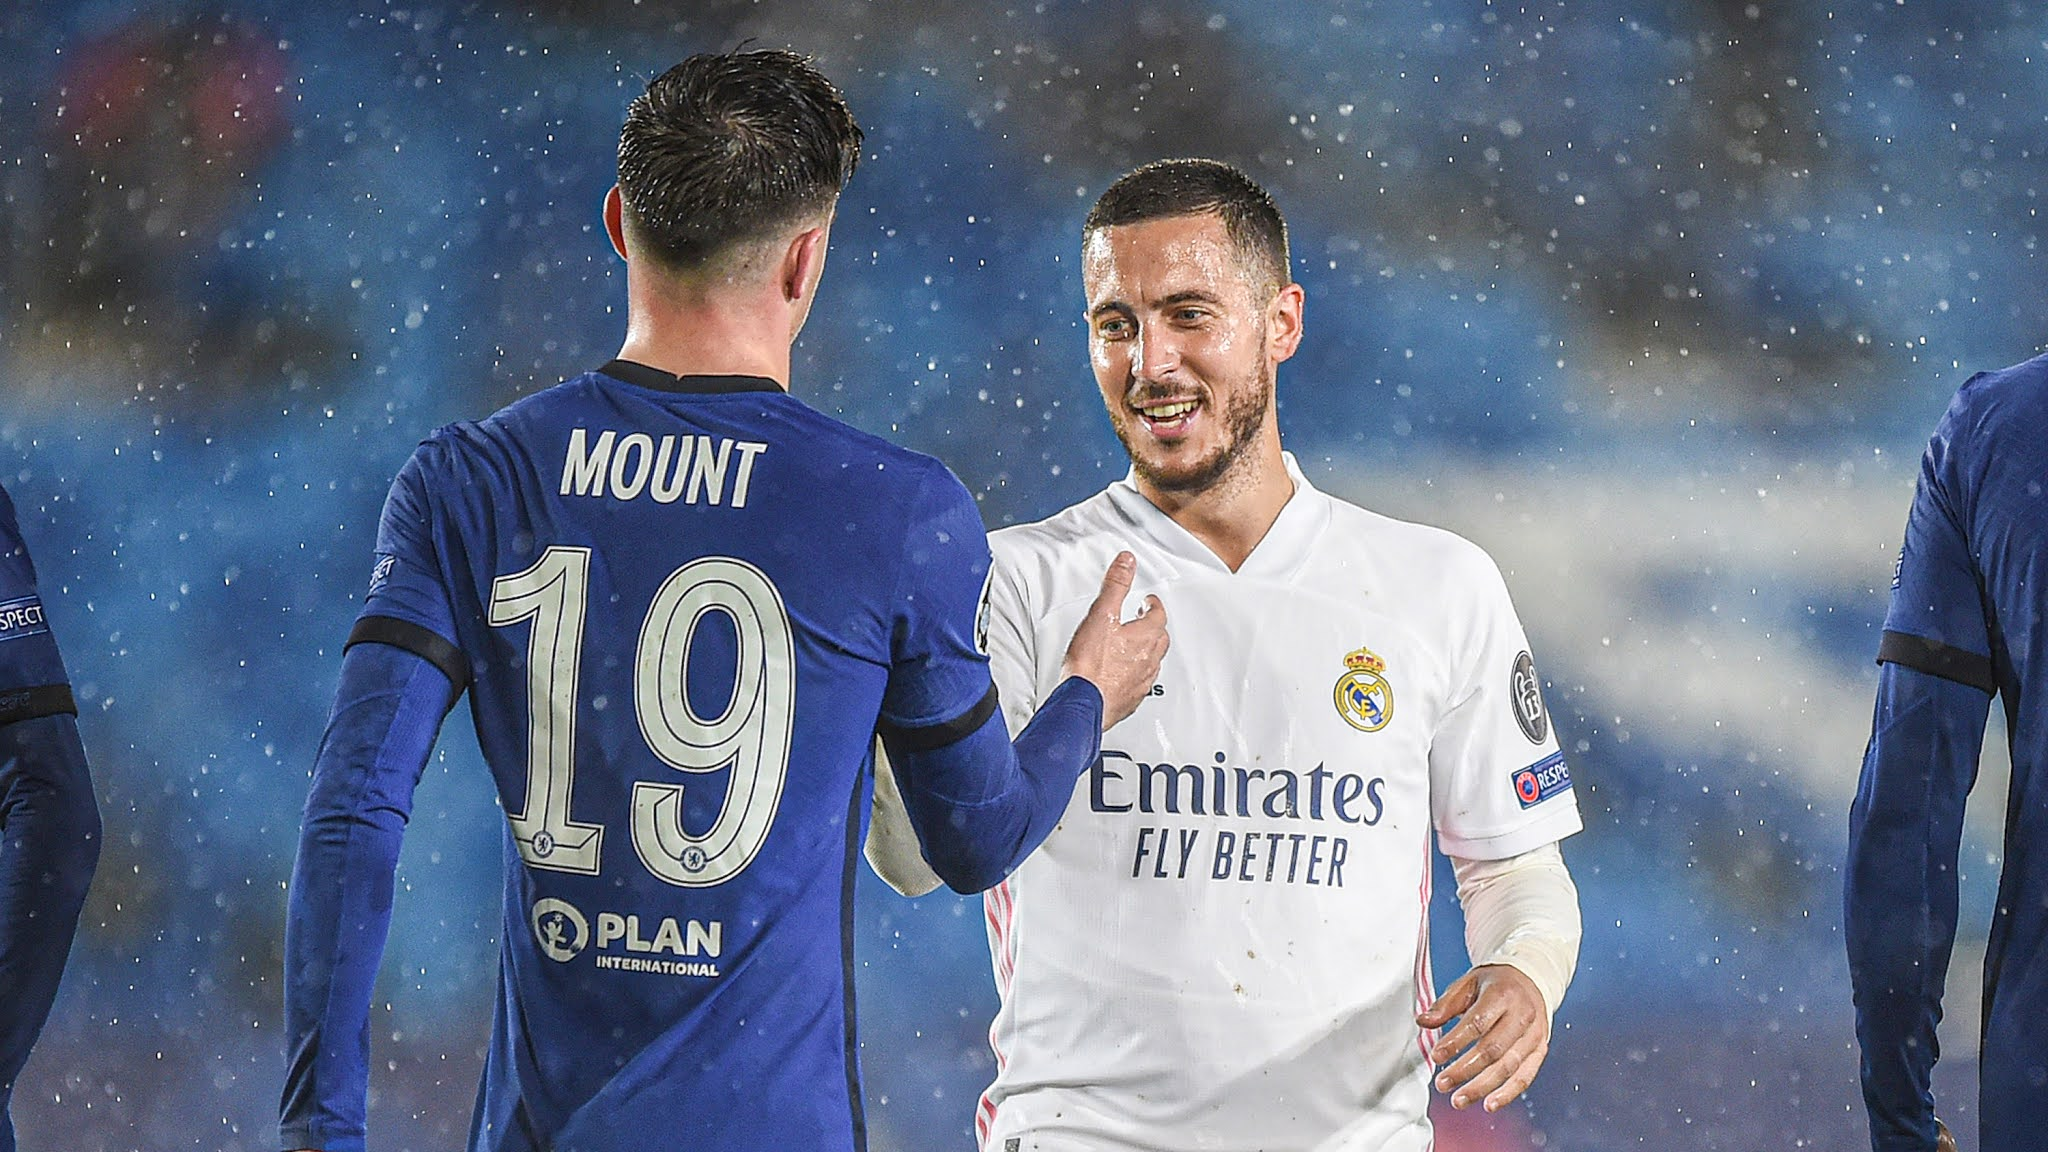 Eden Hazard makes his return to Stamford Bridge in the colours of Real Madrid